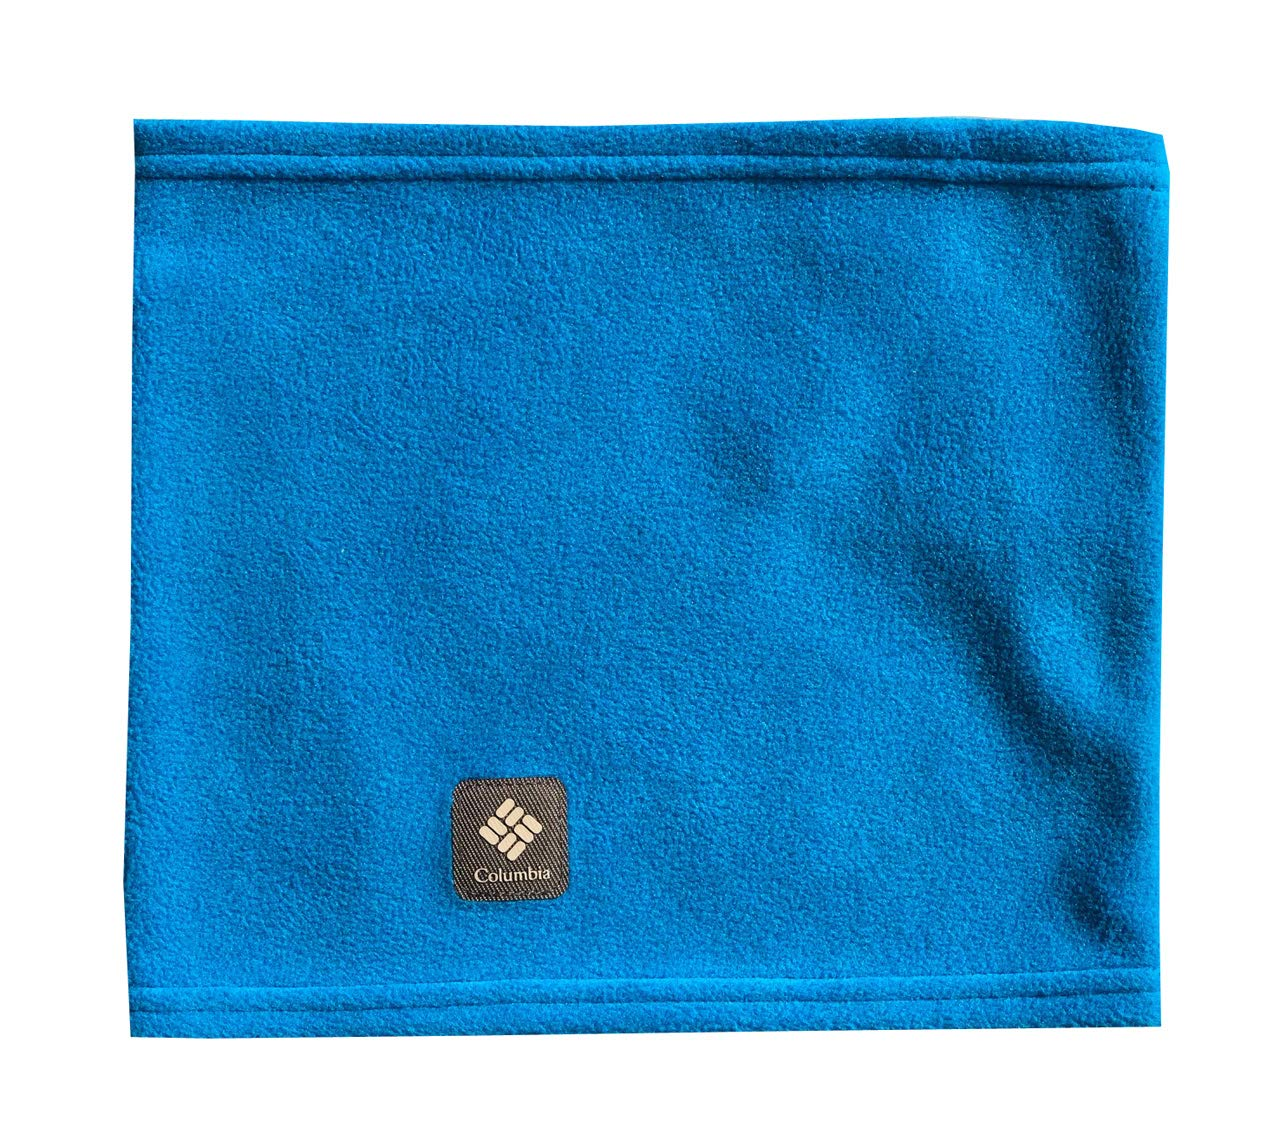 Columbia Unisex Agent Heat Omni-Heat Thermal Reflective Fleece Neck Gaiter Scarf (Bright blue) by Columbia